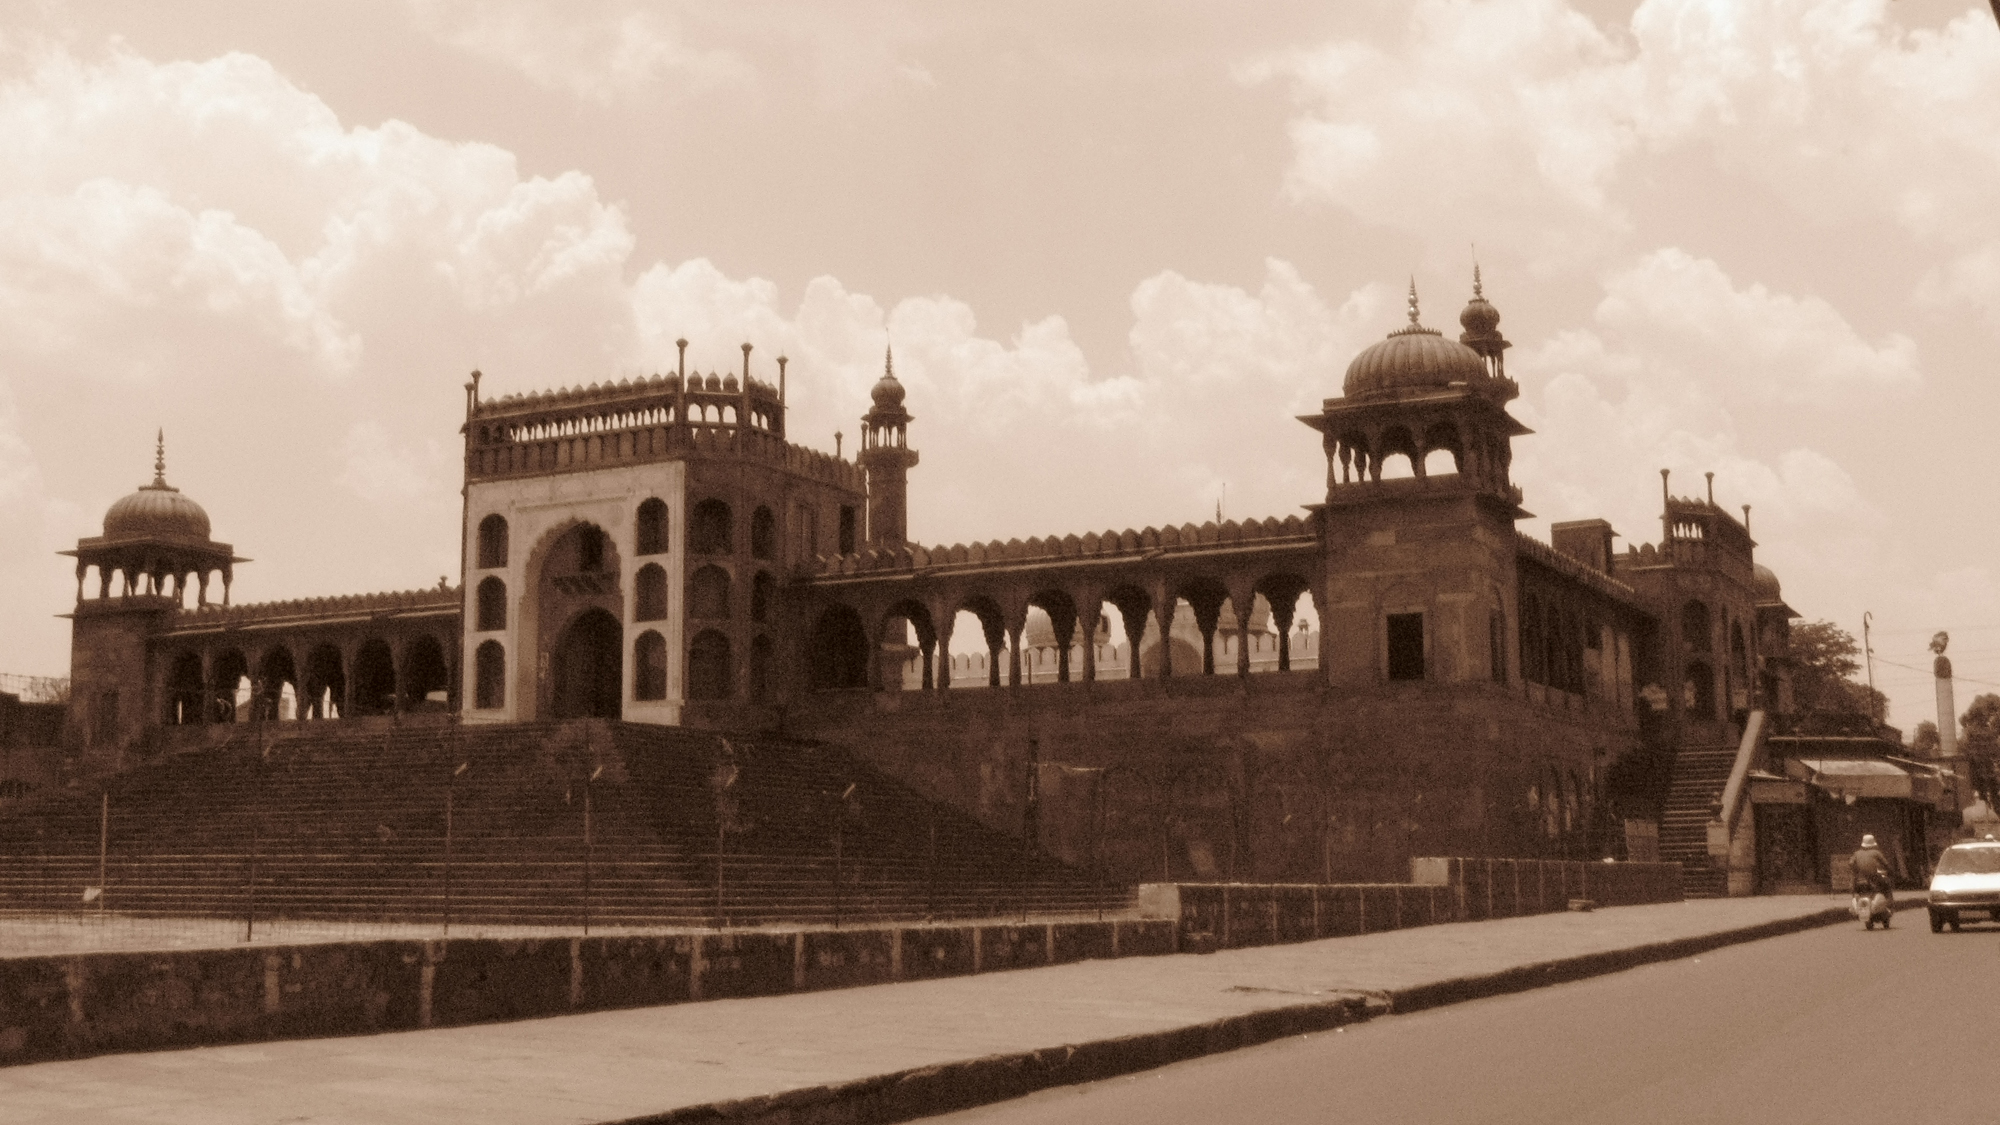 One of the oldest monuments in Bhopal, Moti Masjid stands in the middle of the city amidst the city chaos. Everyday while going to school I used to see this masjid. Once I saw it through my lense, it was then I could understand the extraordinariness and beauty of this monument